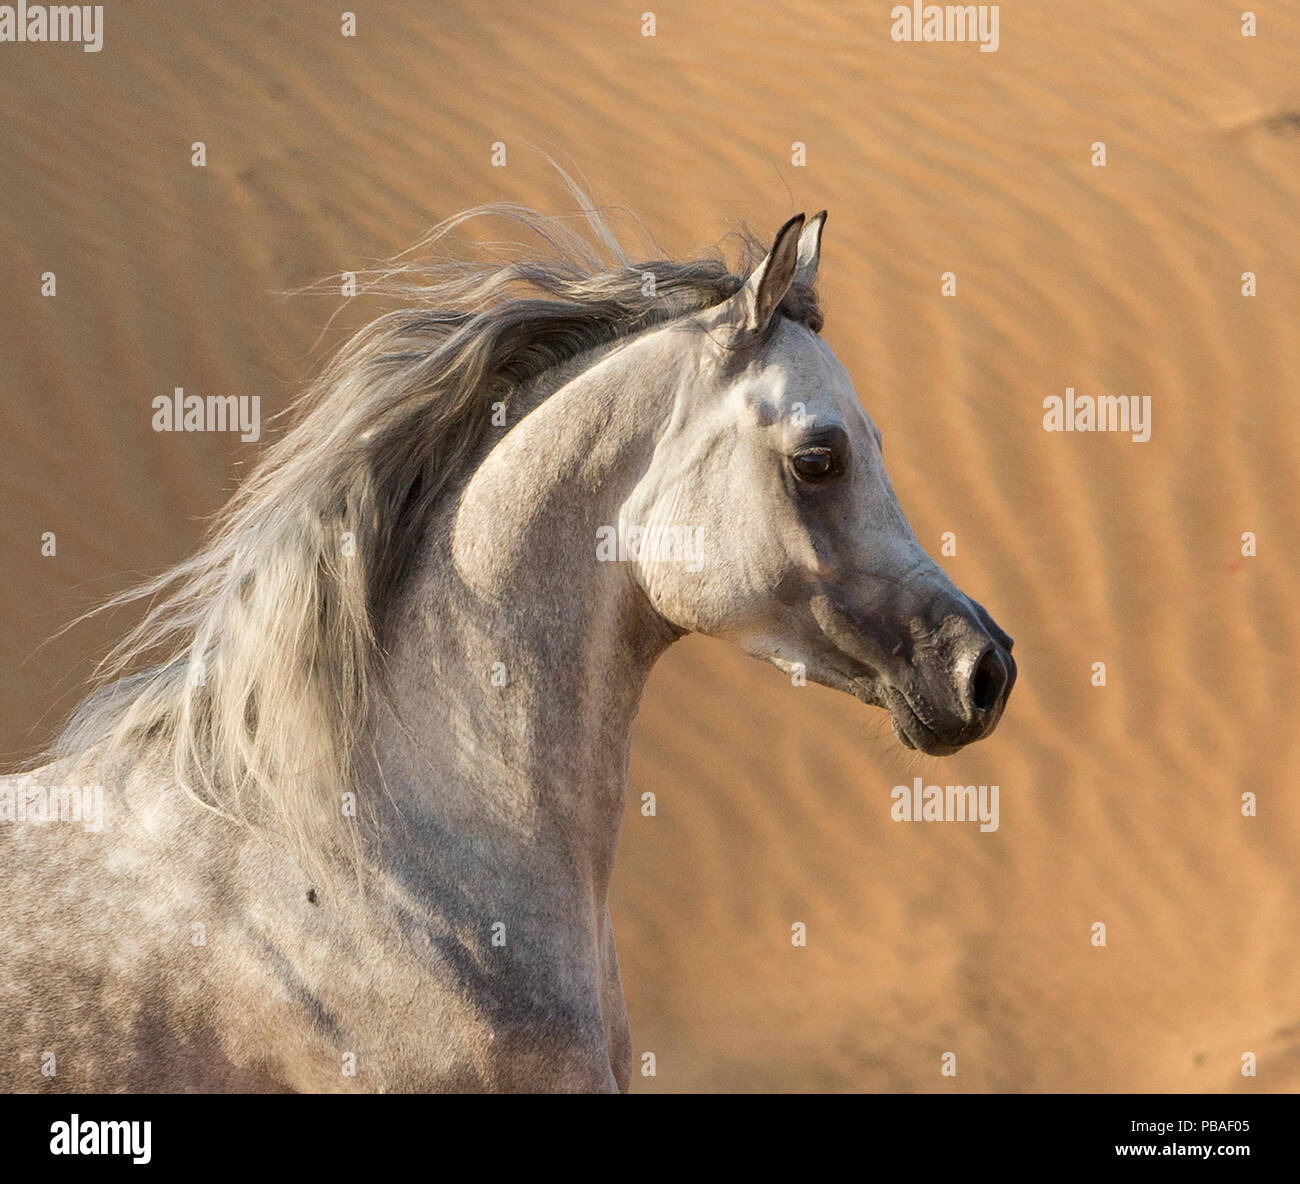 Head portrait of grey Arabian stallion running in desert dunes near Dubai, United Arab Emirates. - Stock Image